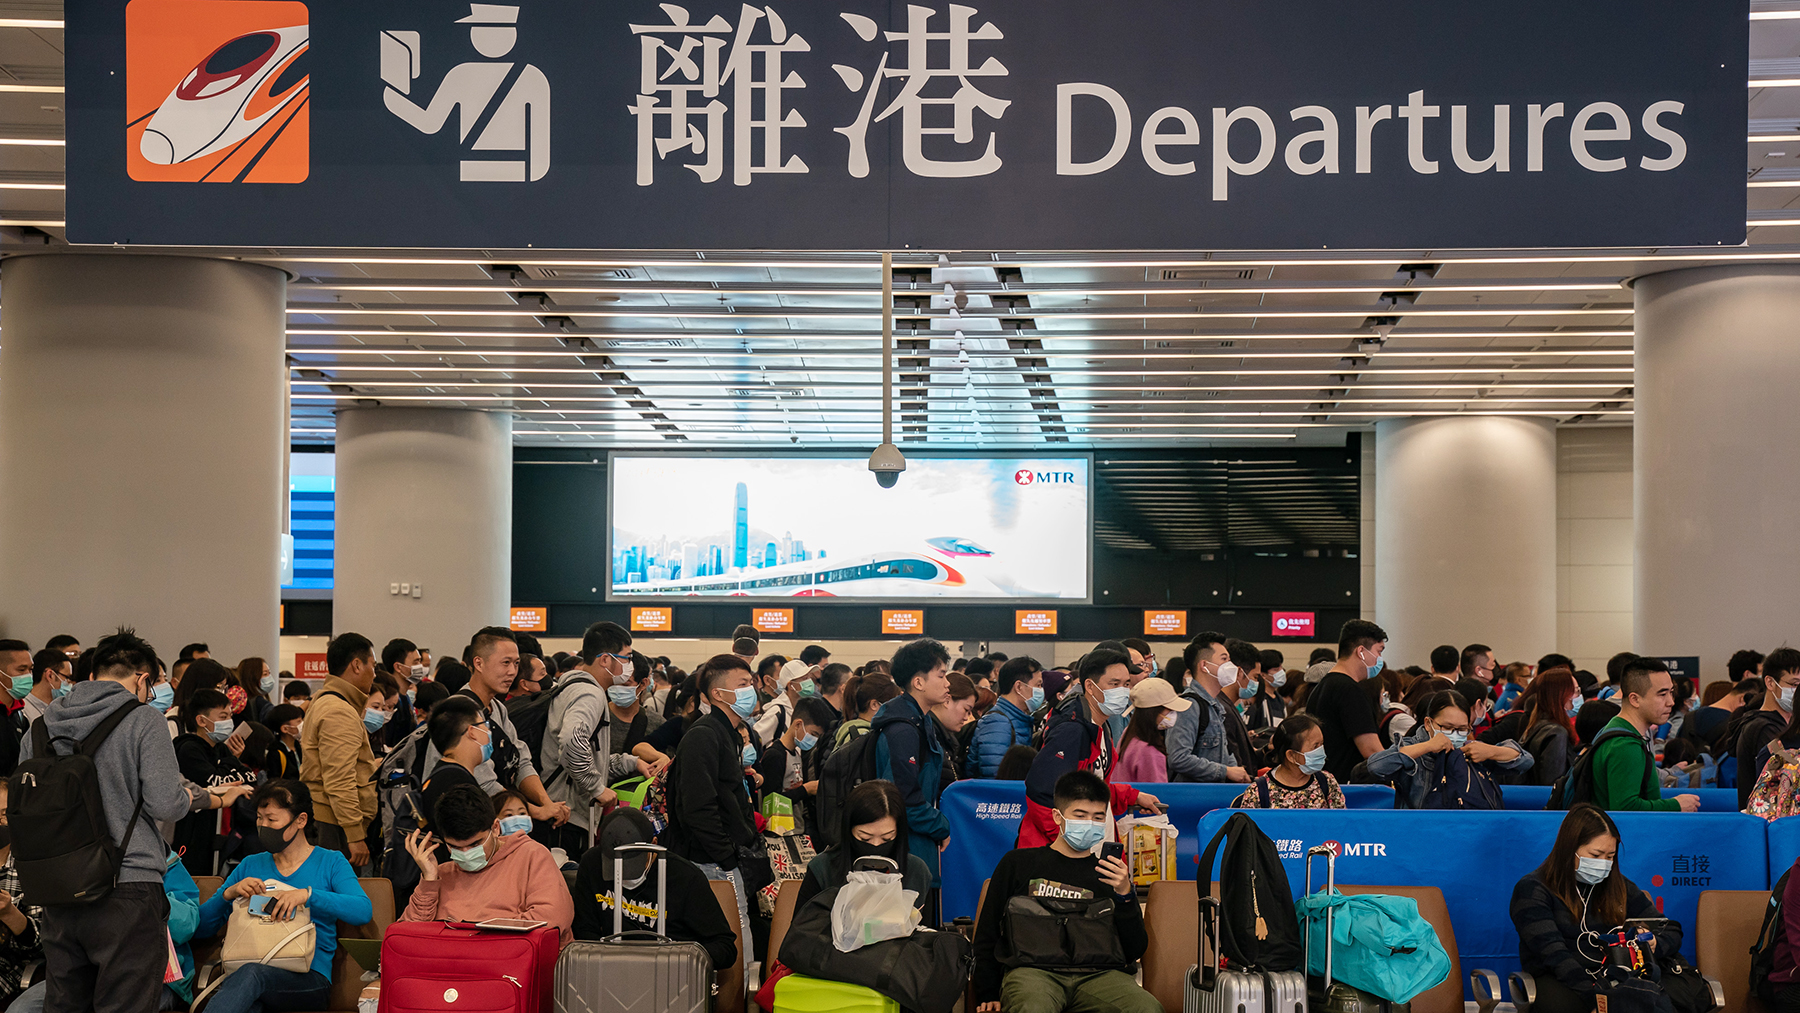 Travelers wearing face masks wait at the departure hall of West Kowloon Station on January 23, 2020, in Hong Kong, China. Hong Kong reported its first two cases of Wuhan coronavirus infections as the number of those who have died from the virus in China climbed to seventeen on Wednesday and cases have been reported in other countries including the United States,Thailand, Japan, Taiwan and South Korea. (Photo by Anthony Kwan/Getty Images)